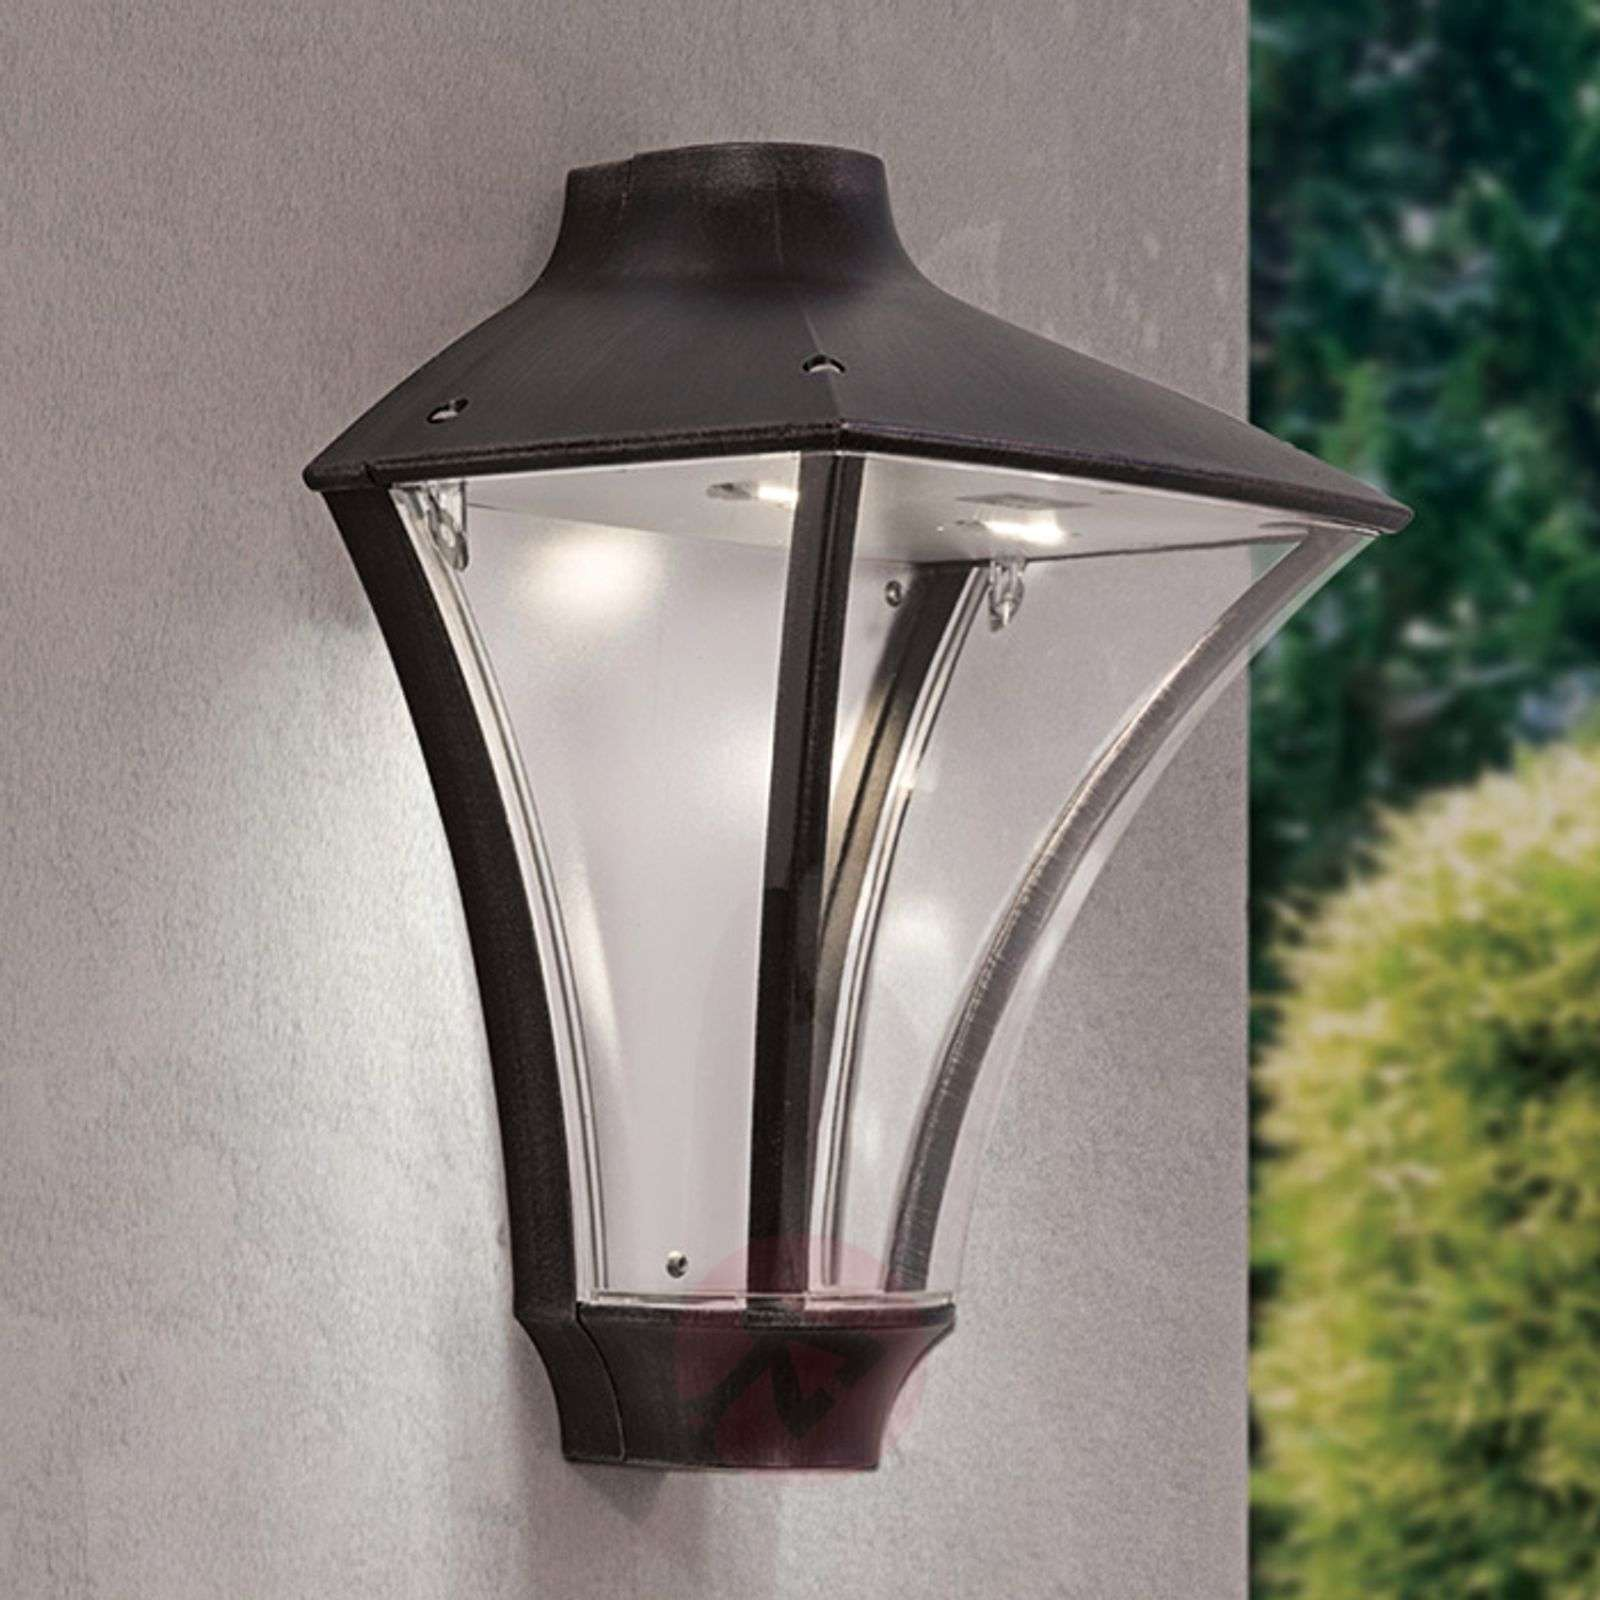 Acquista applique led rigon da esterni a luce chiara ip lampade